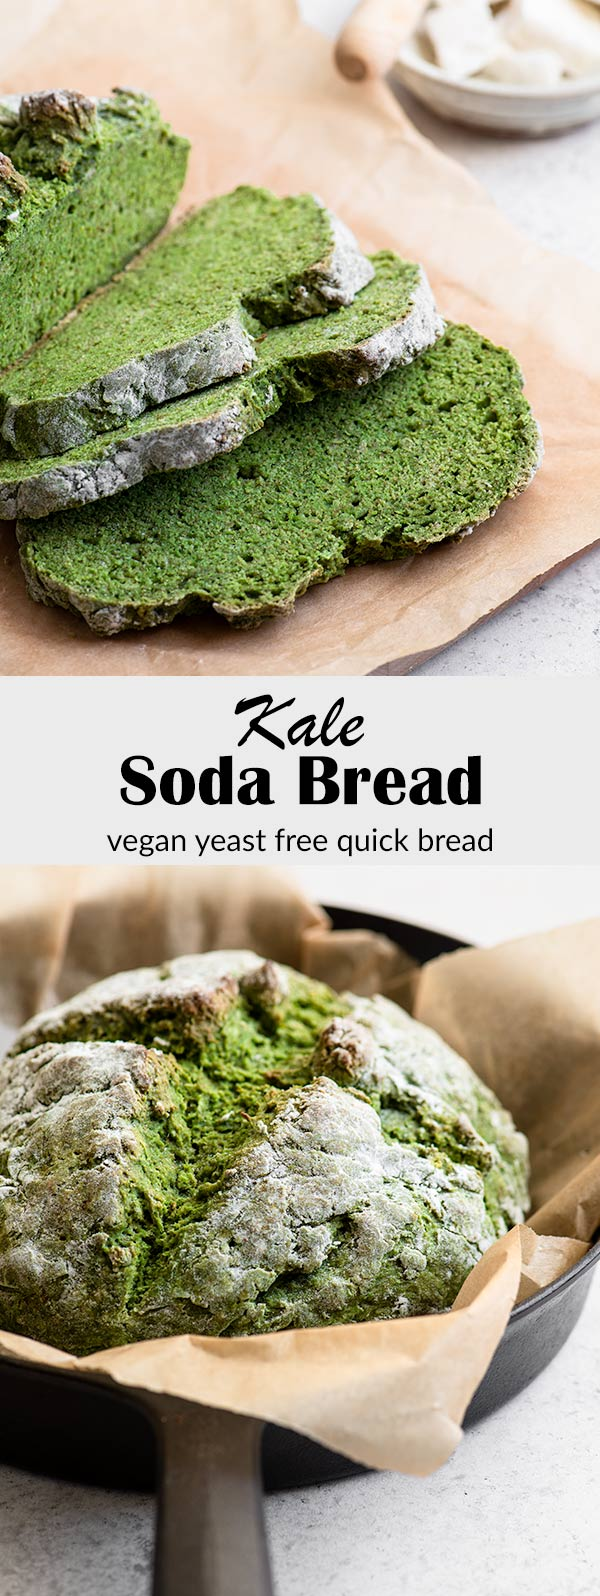 This homemade kale soda bread is soft and tender on the inside with a beautiful green hue that's 100% natural and from the kale! It's easy to make, and can even be made gluten free. #quickbread #sodabread #kale #baking #veganbaking #veganbread